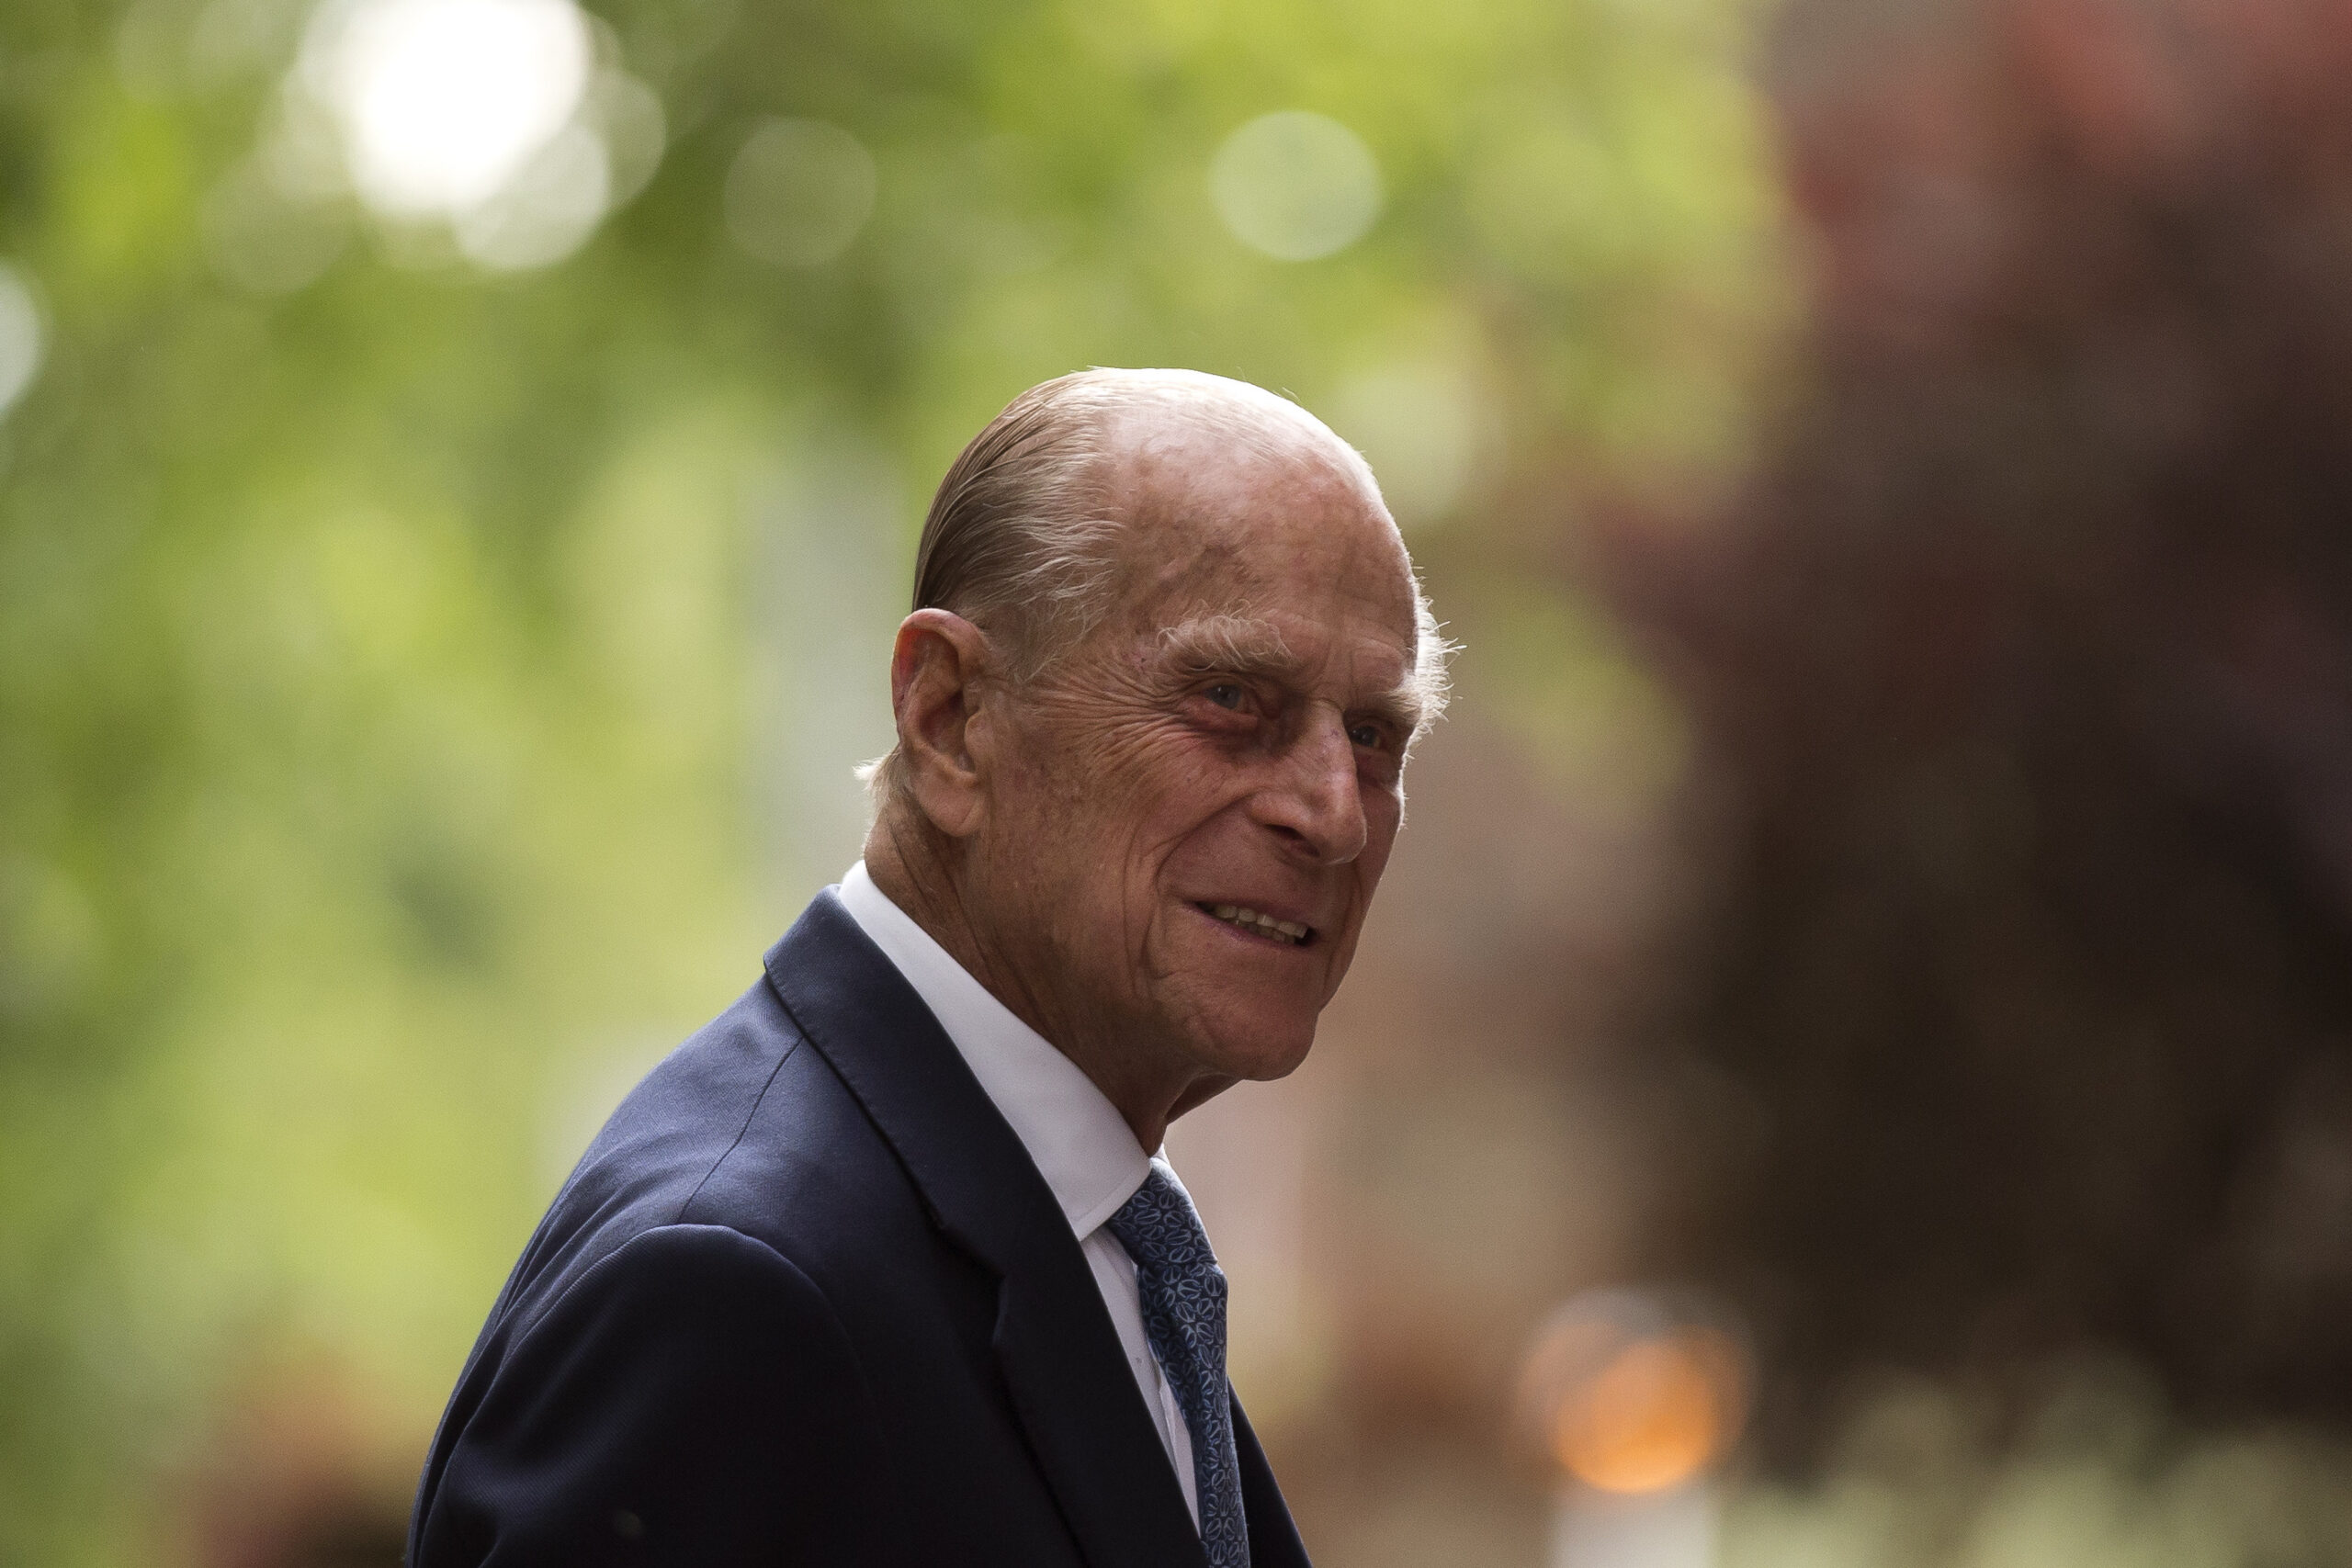 Mourning the death of Prince Philip